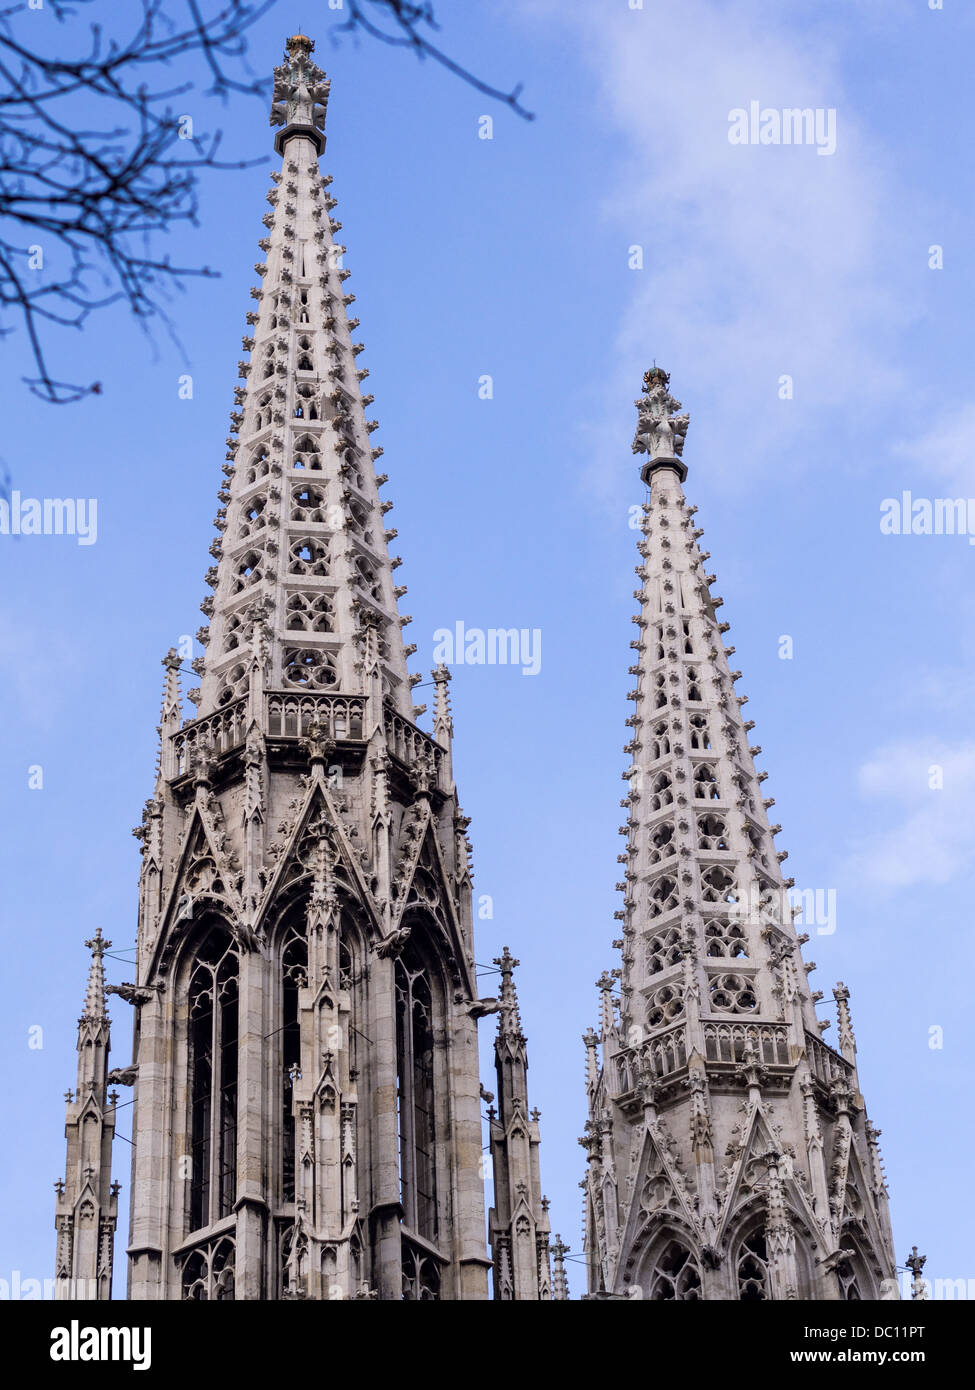 Votive Twin Spires. The bright stone of the filigreed spires of this landmark Vienna church with a blue sky. - Stock Image